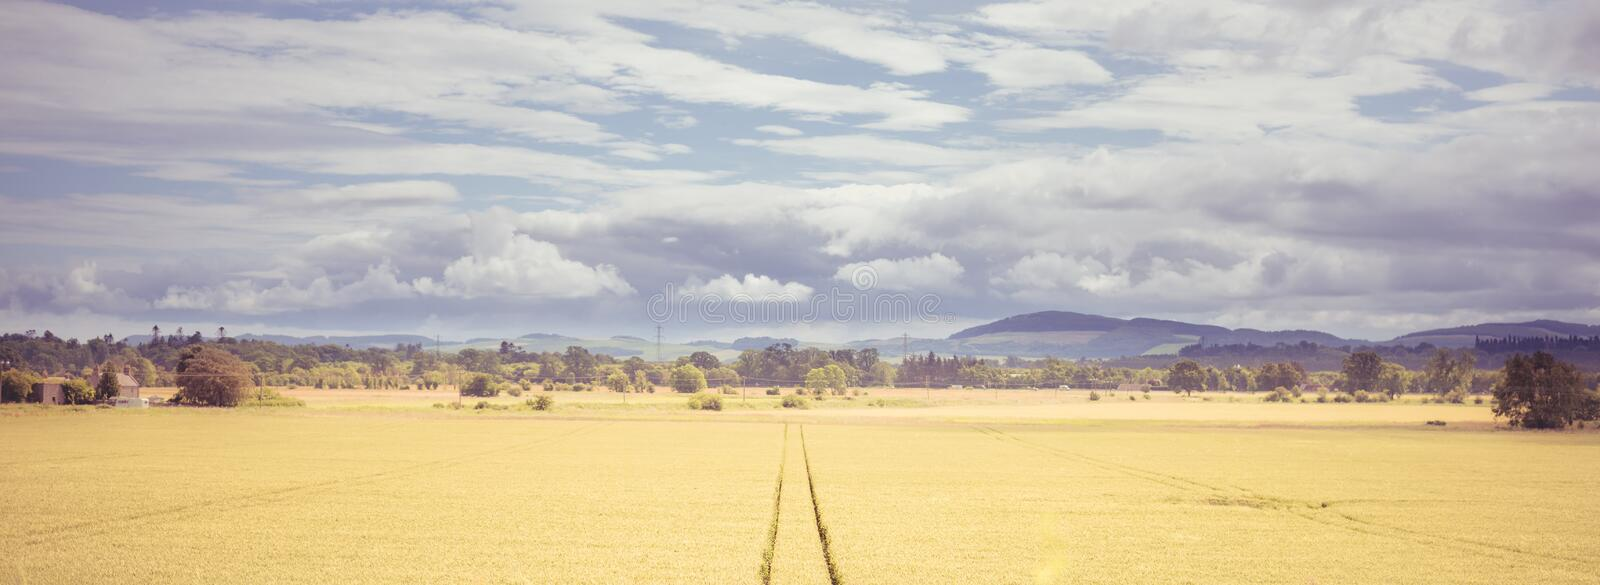 Outdoor overcast landscape view of fresh green and yellow growing wheat field with the trace of tractor or vehicle wheel mark, in royalty free stock photo